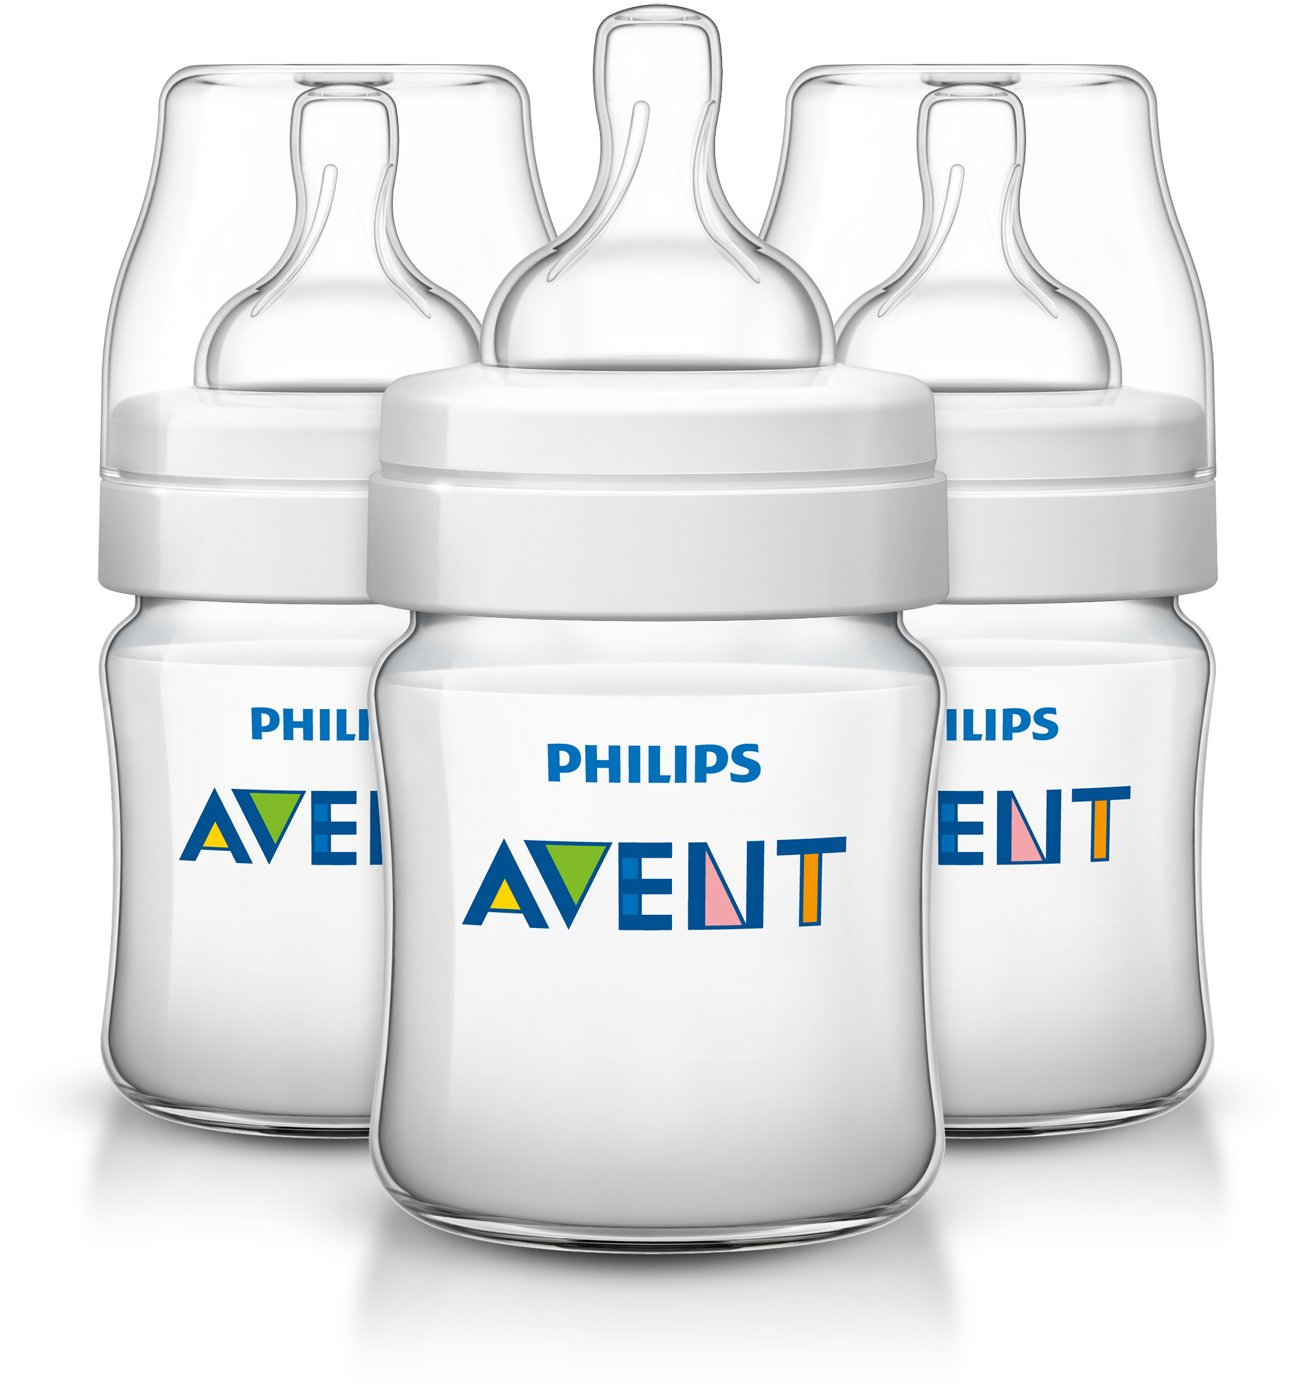 Cheap Anti Colic Bottles Find Deals On Line At Buy 1 Get Free Mam Bottle Pink Quotations Philips Avent Baby Clear 4oz 3 Piece